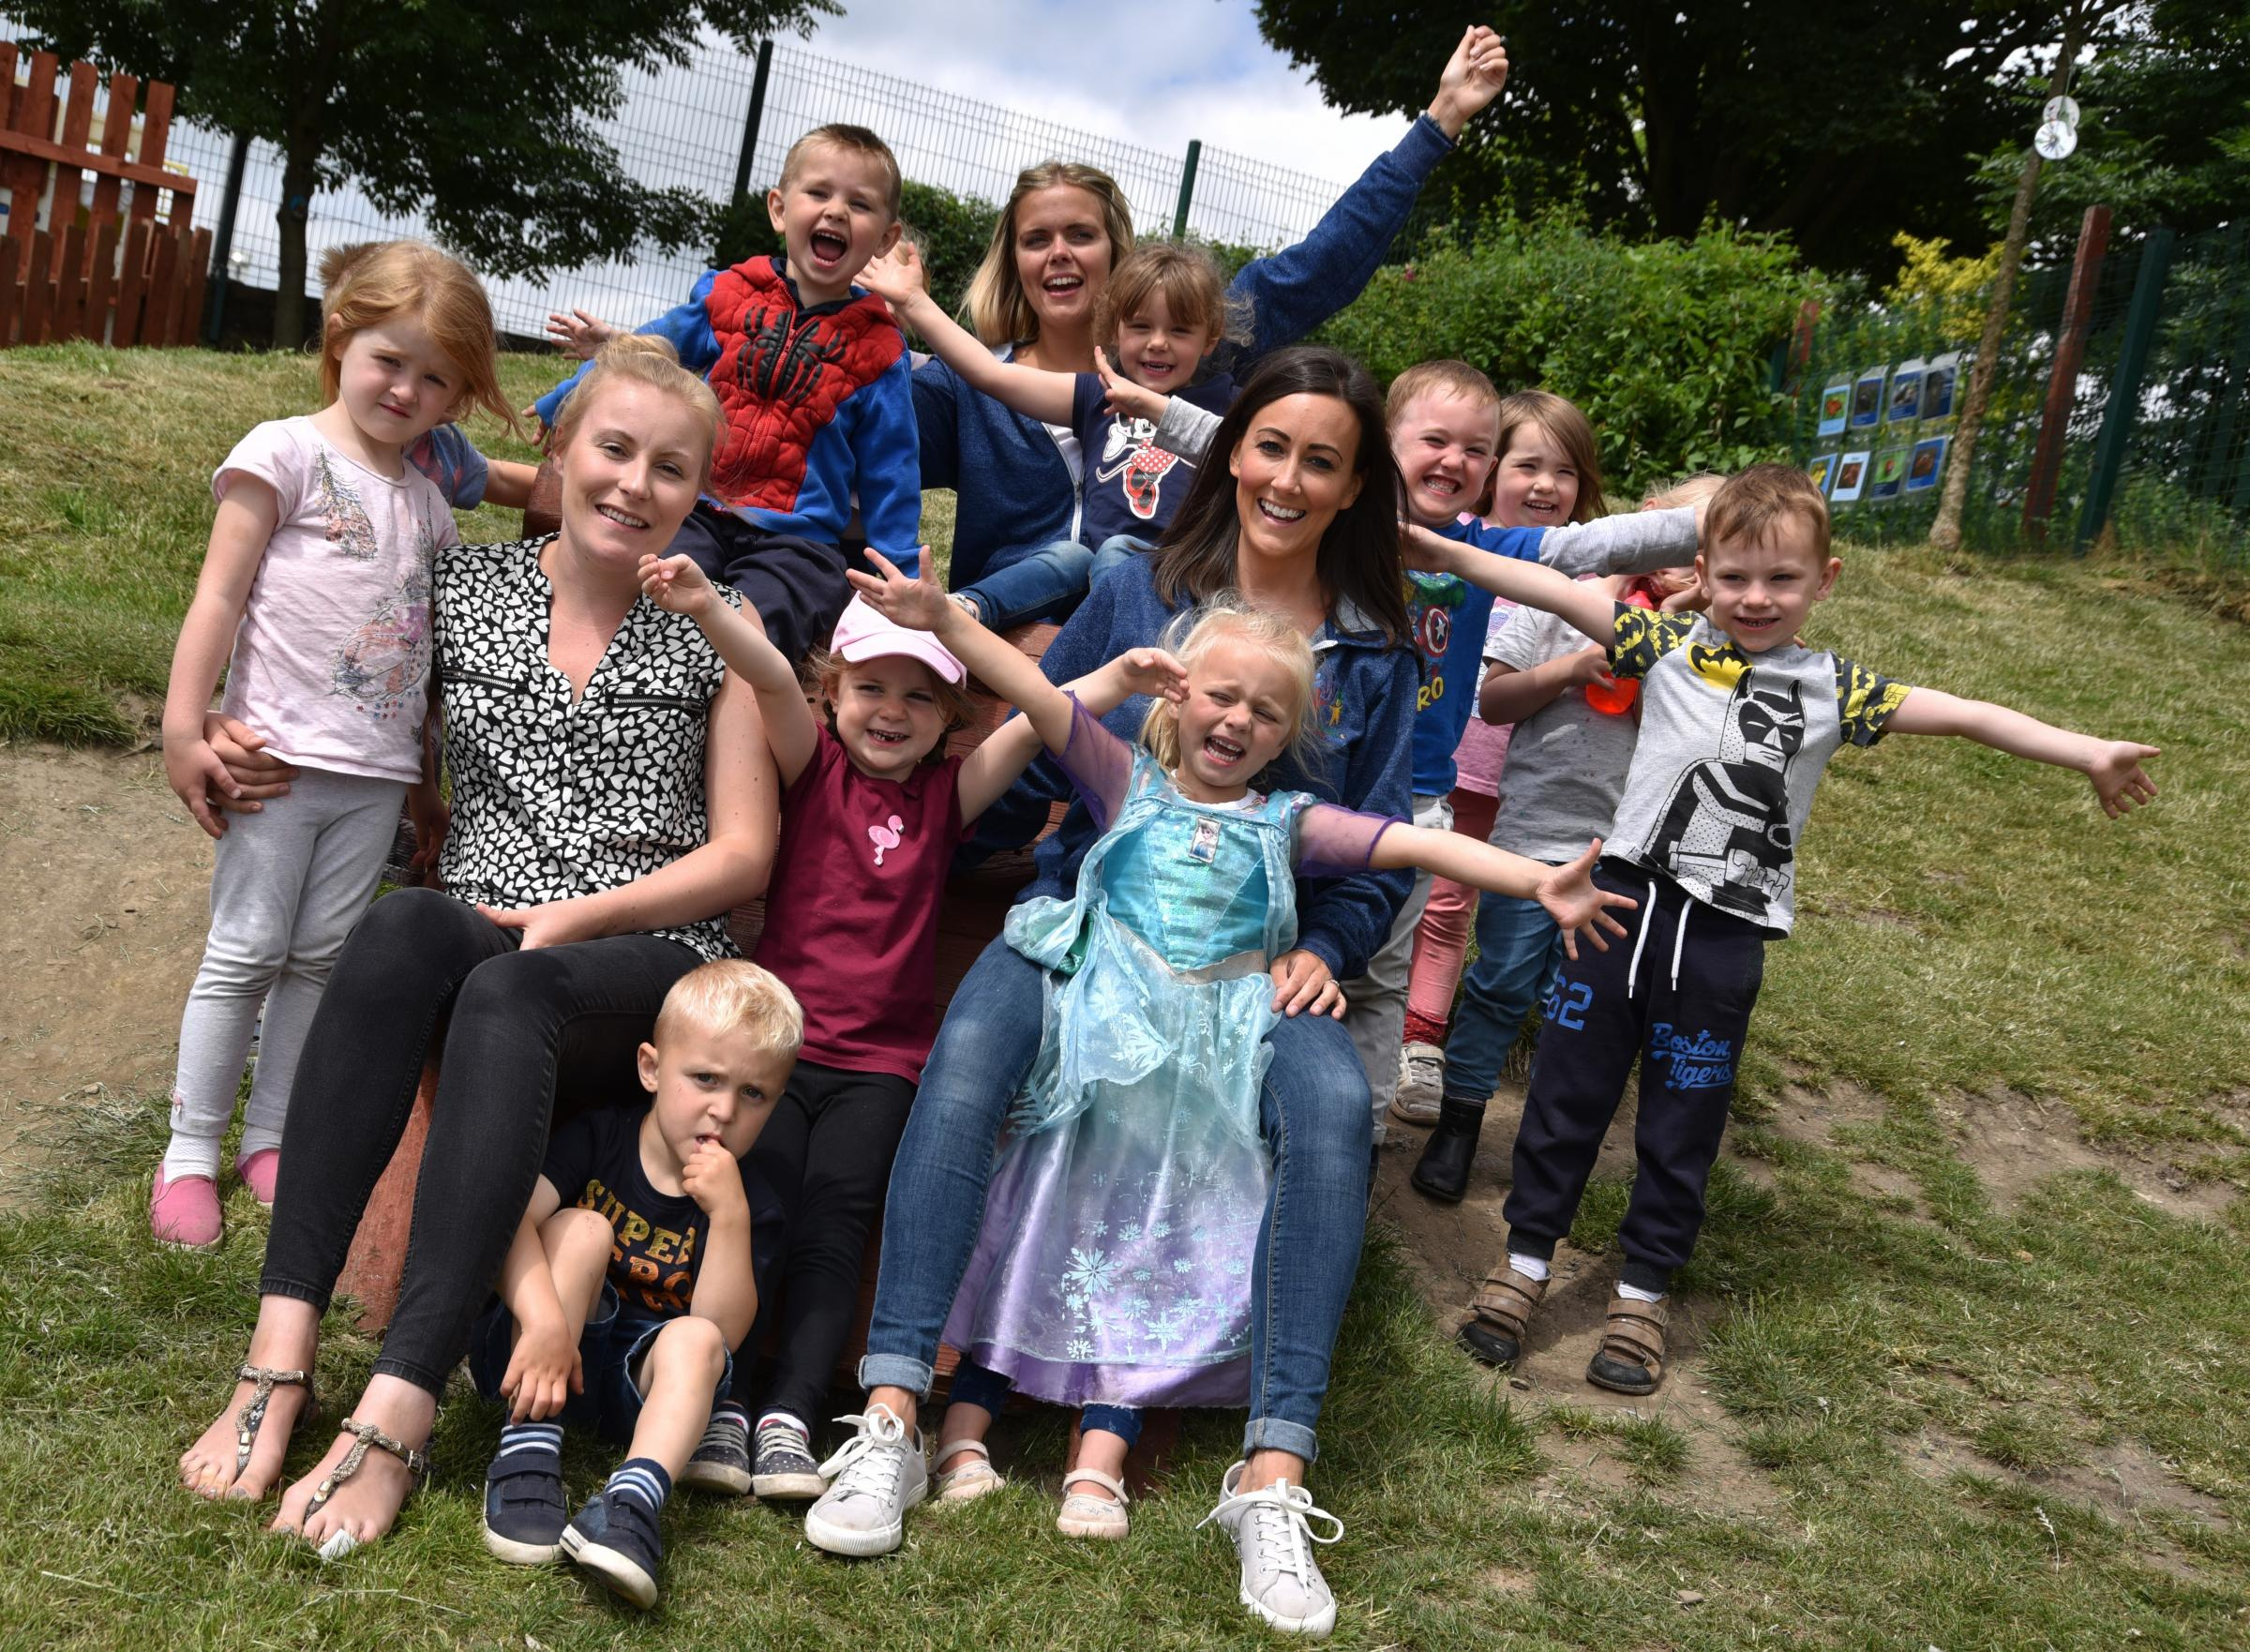 OFSTED has rated the early years provision at Wyke Community and Children's Centre as good following an inspection last year when it was judged as inadequate